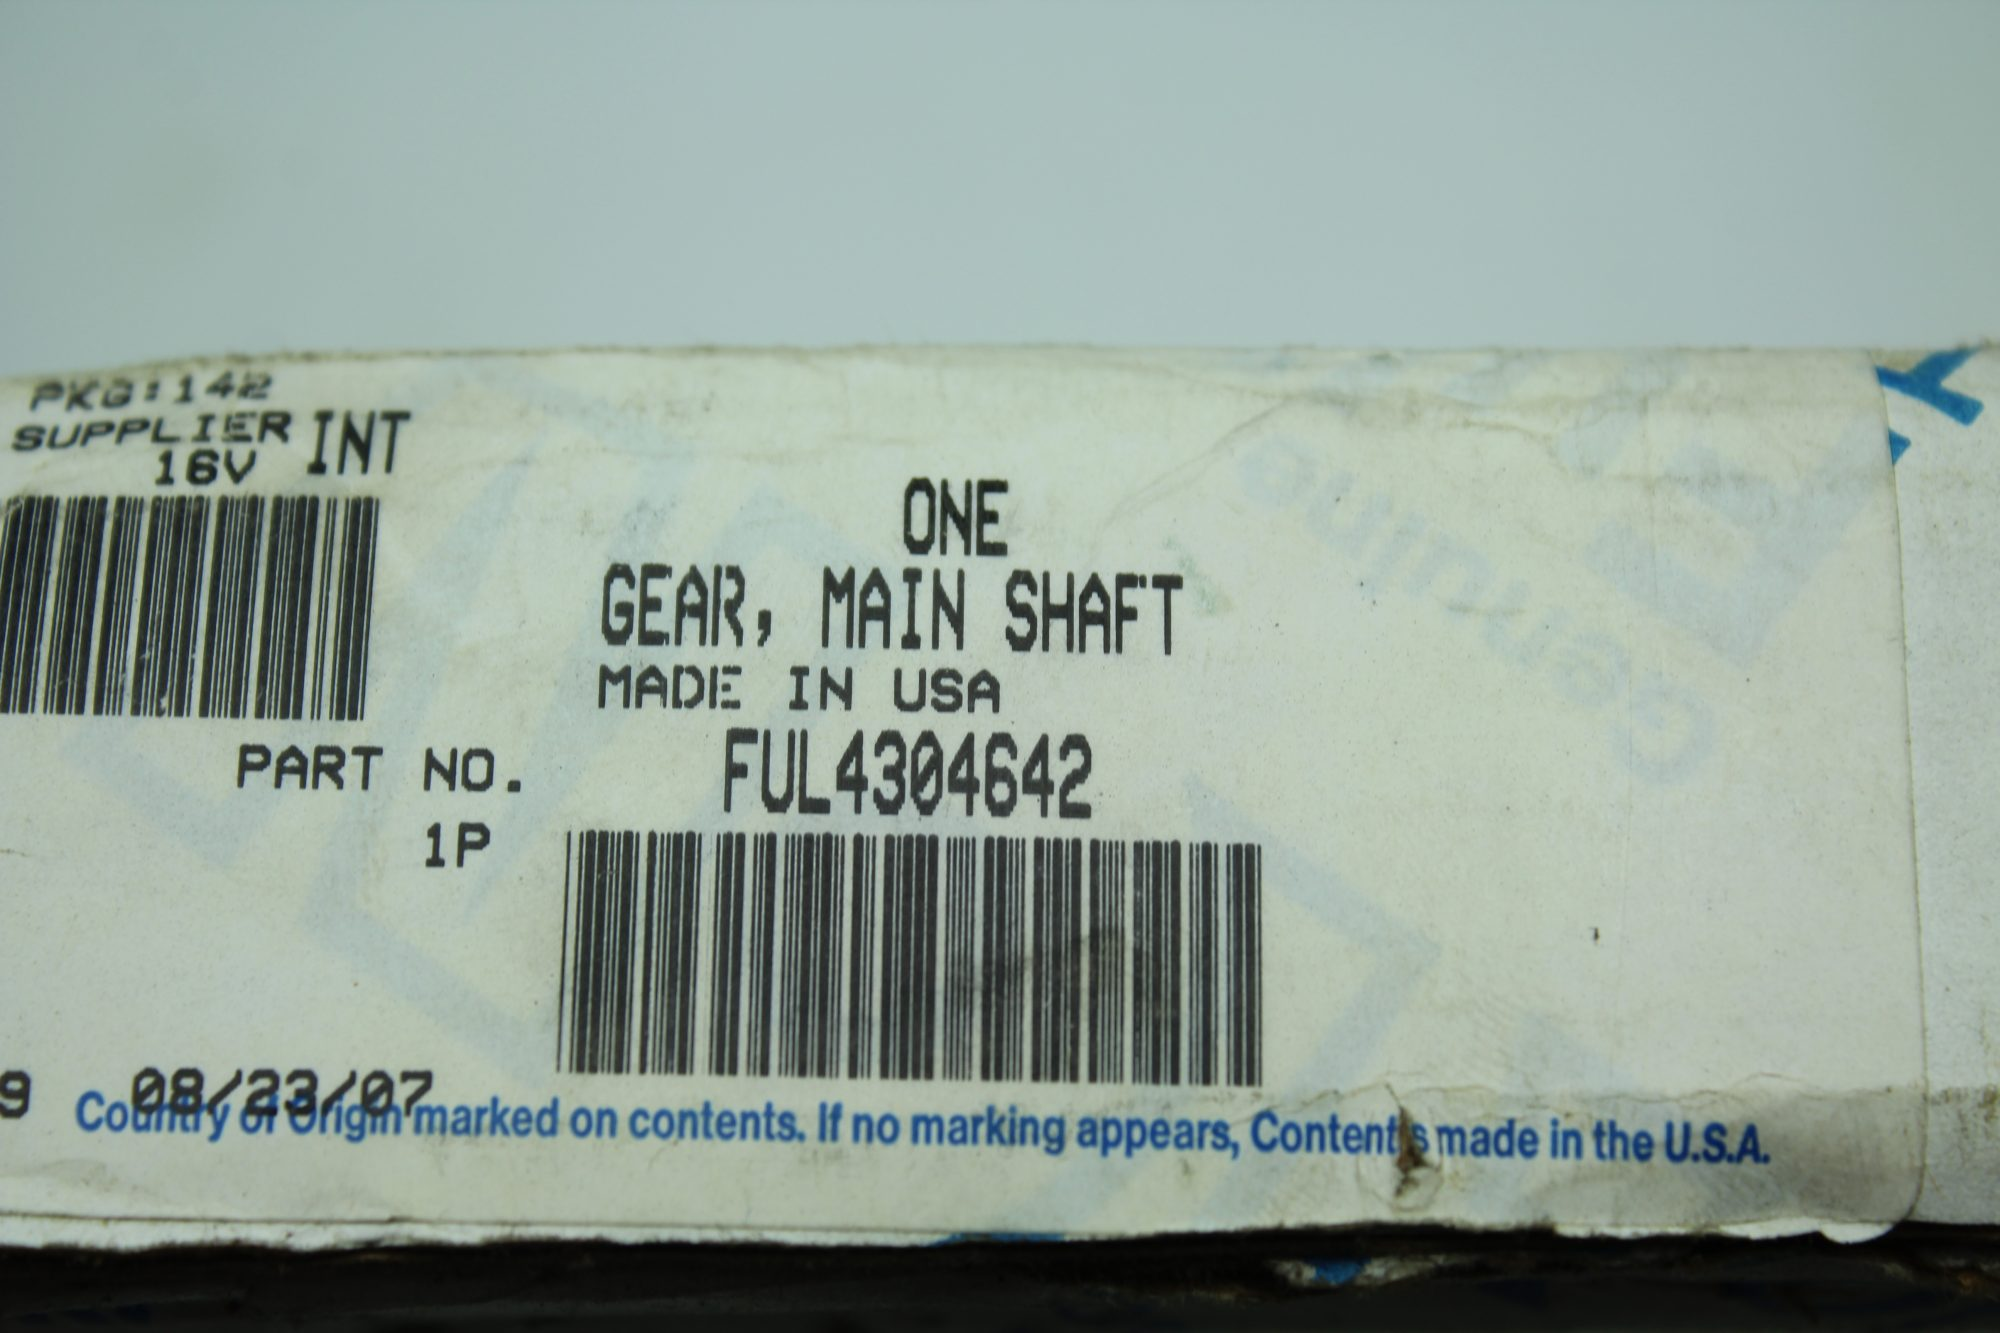 Eaton Fuller Transmission Parts One Gear, Main Shaft FUL4304642